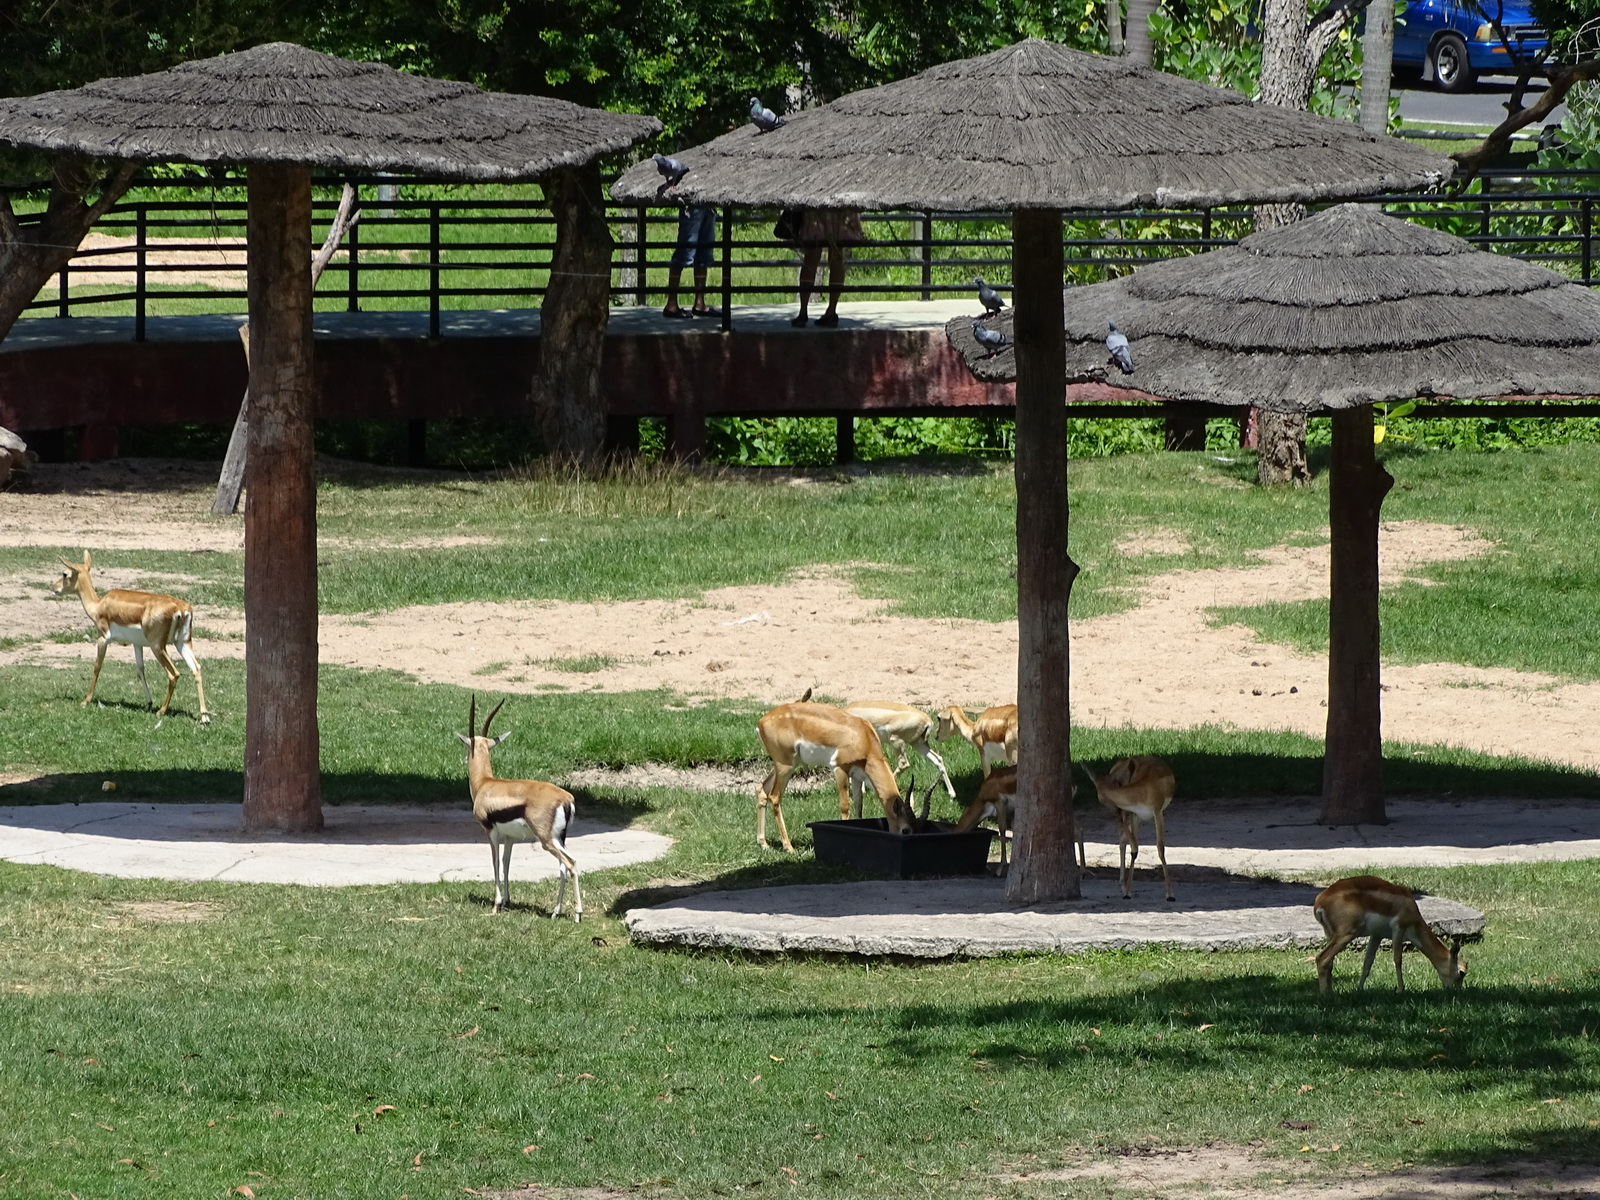 21 Khao Kheow Open Zoo 27